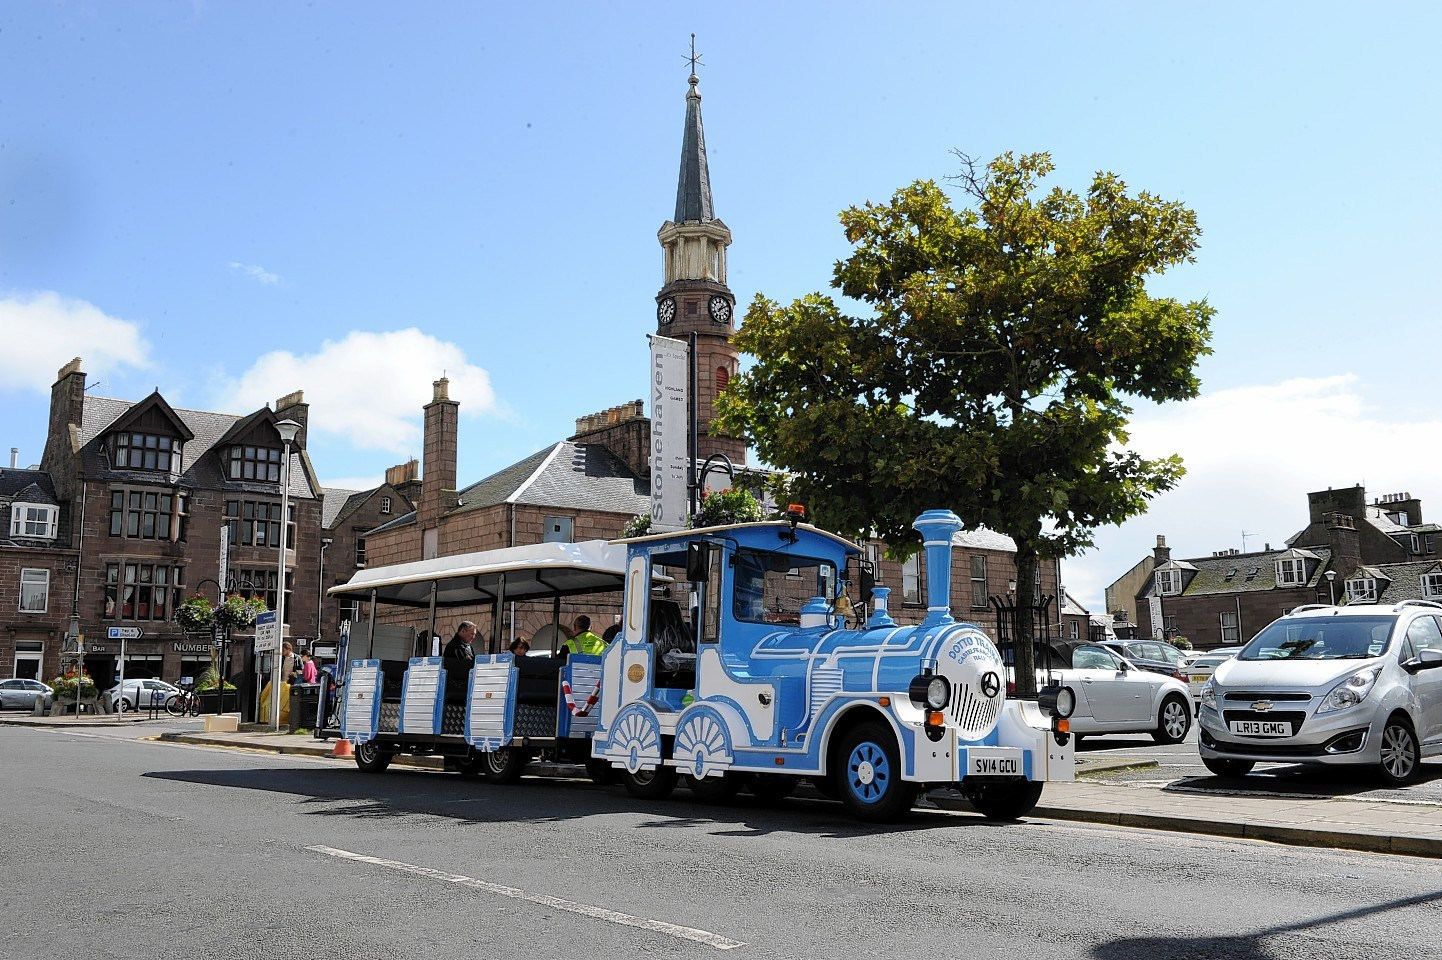 Stonehaven tourist land train at the town square.